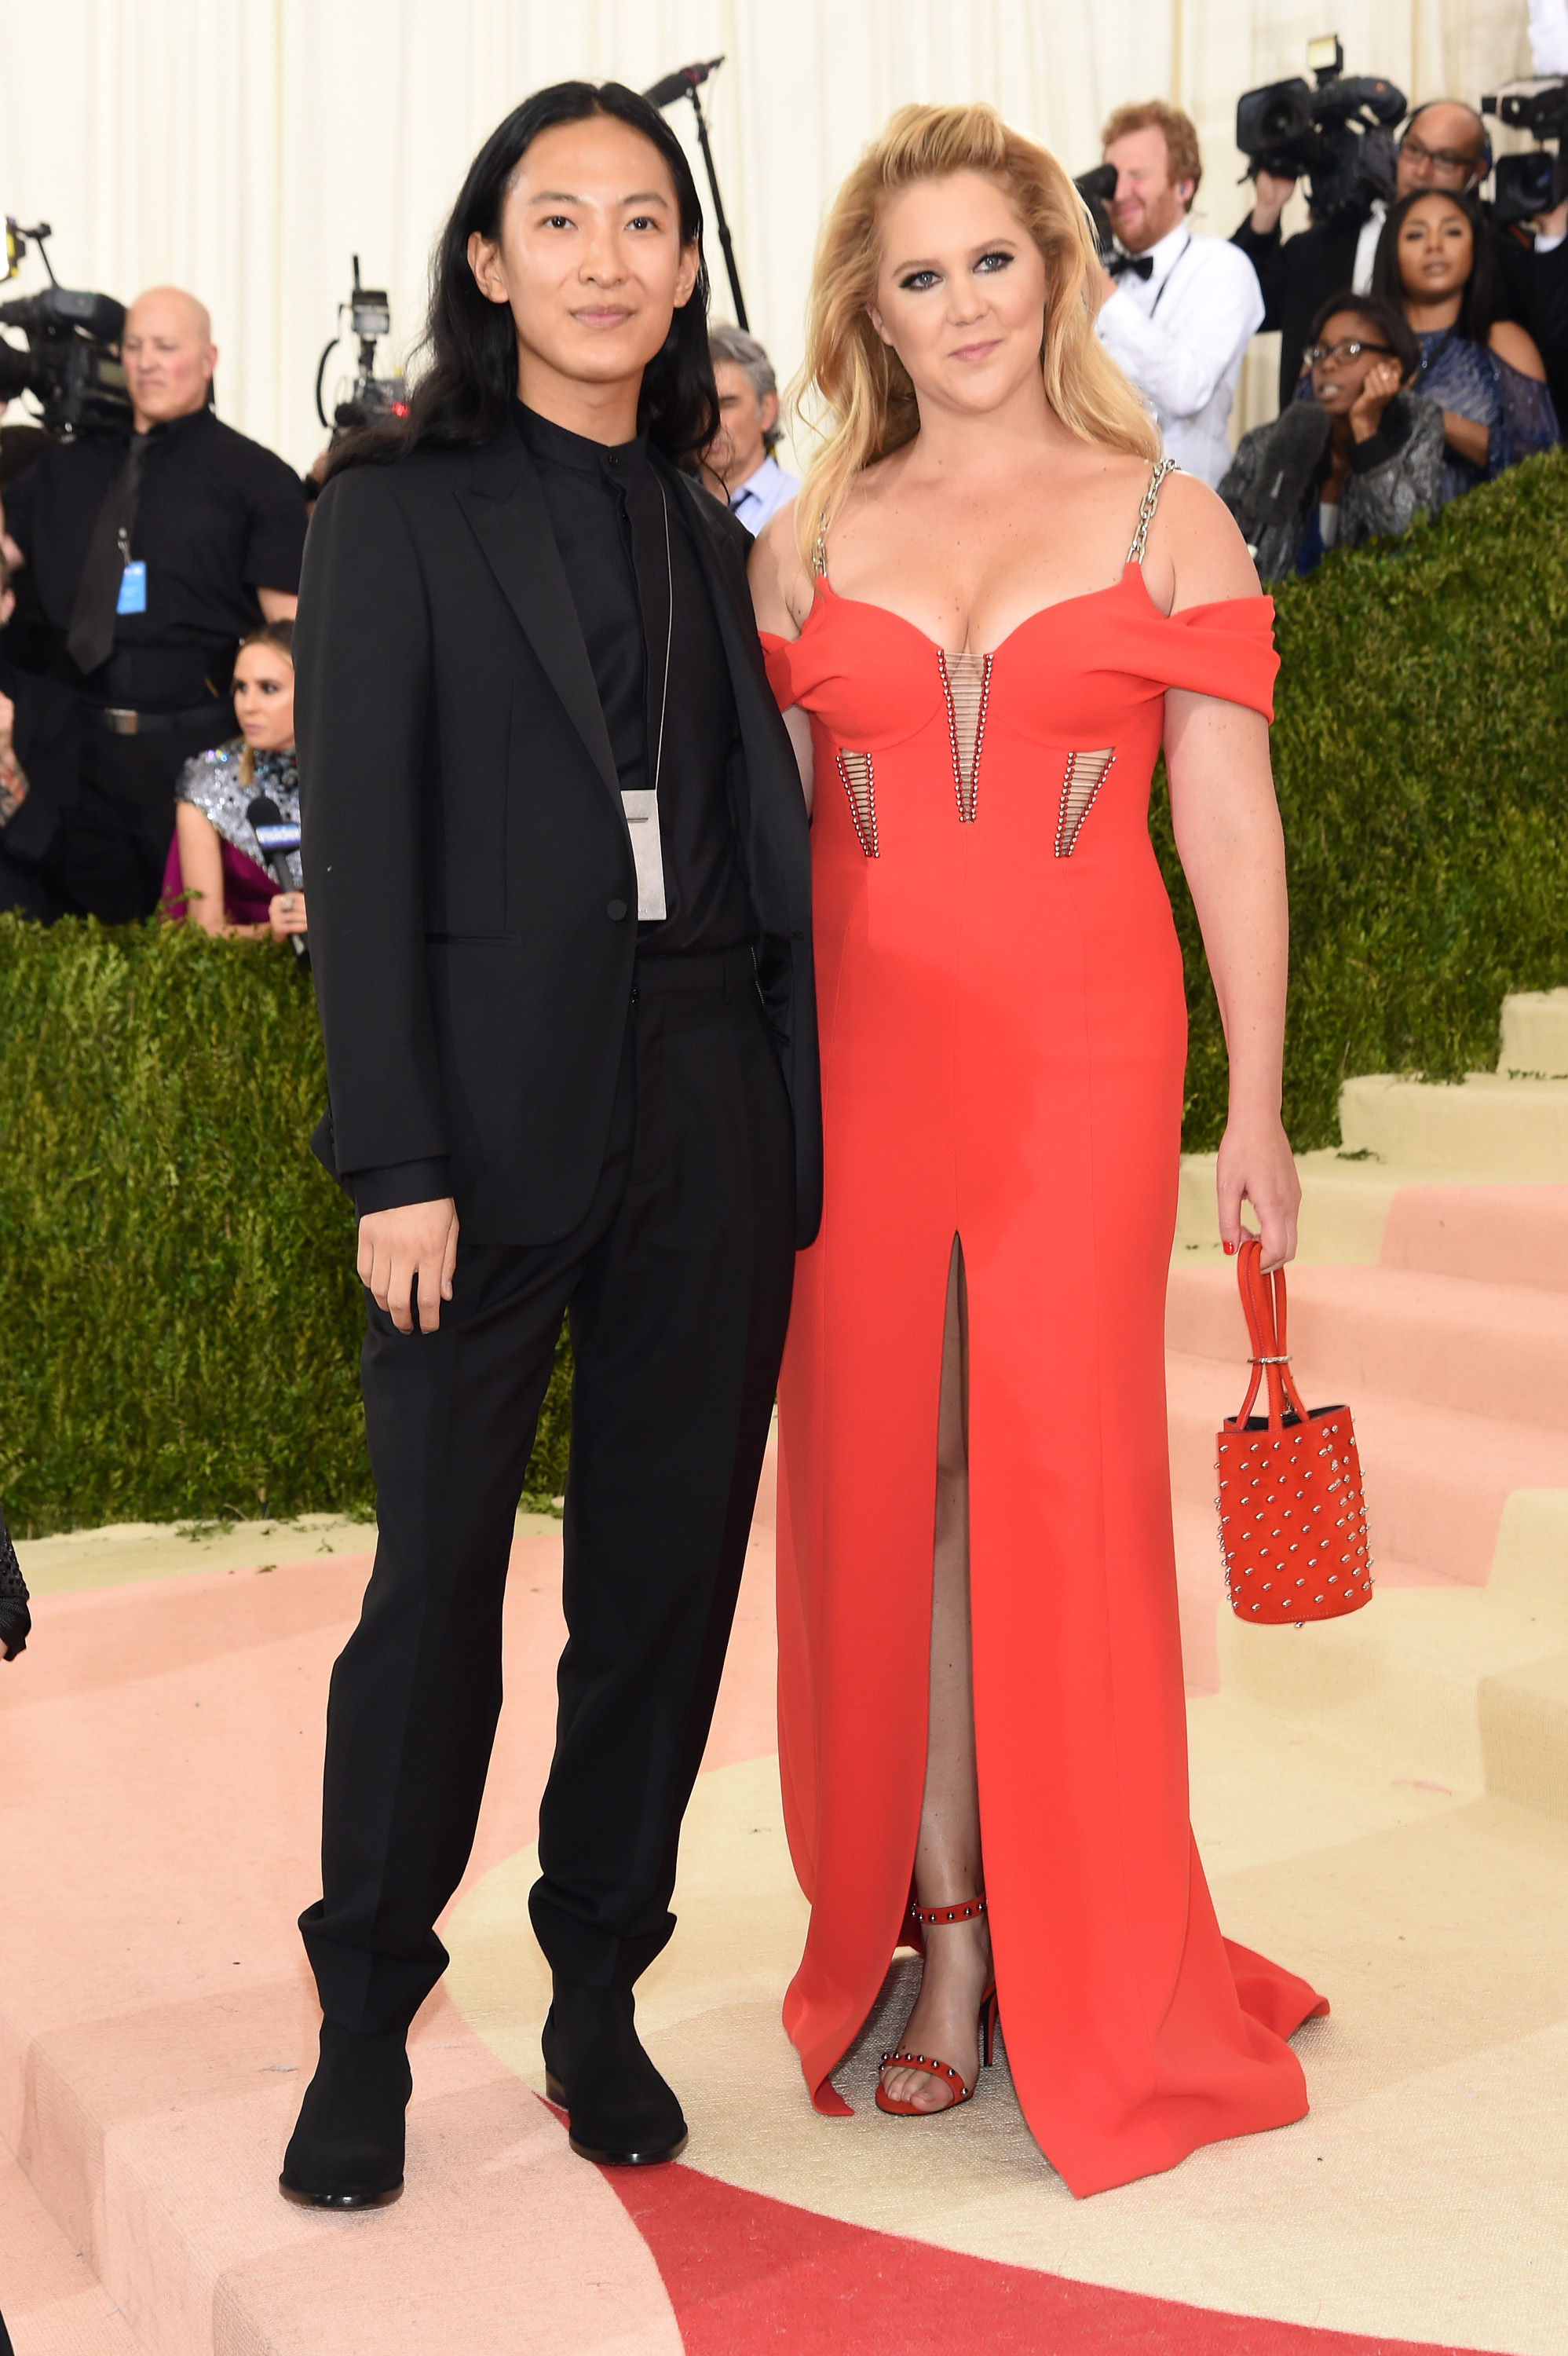 Alexander Wang and Amy Schumer attend  Manus x Machina: Fashion In An Age Of Technology  Costume Institute Gala at Metropolitan Museum of Art on May 2, 2016 in New York City.